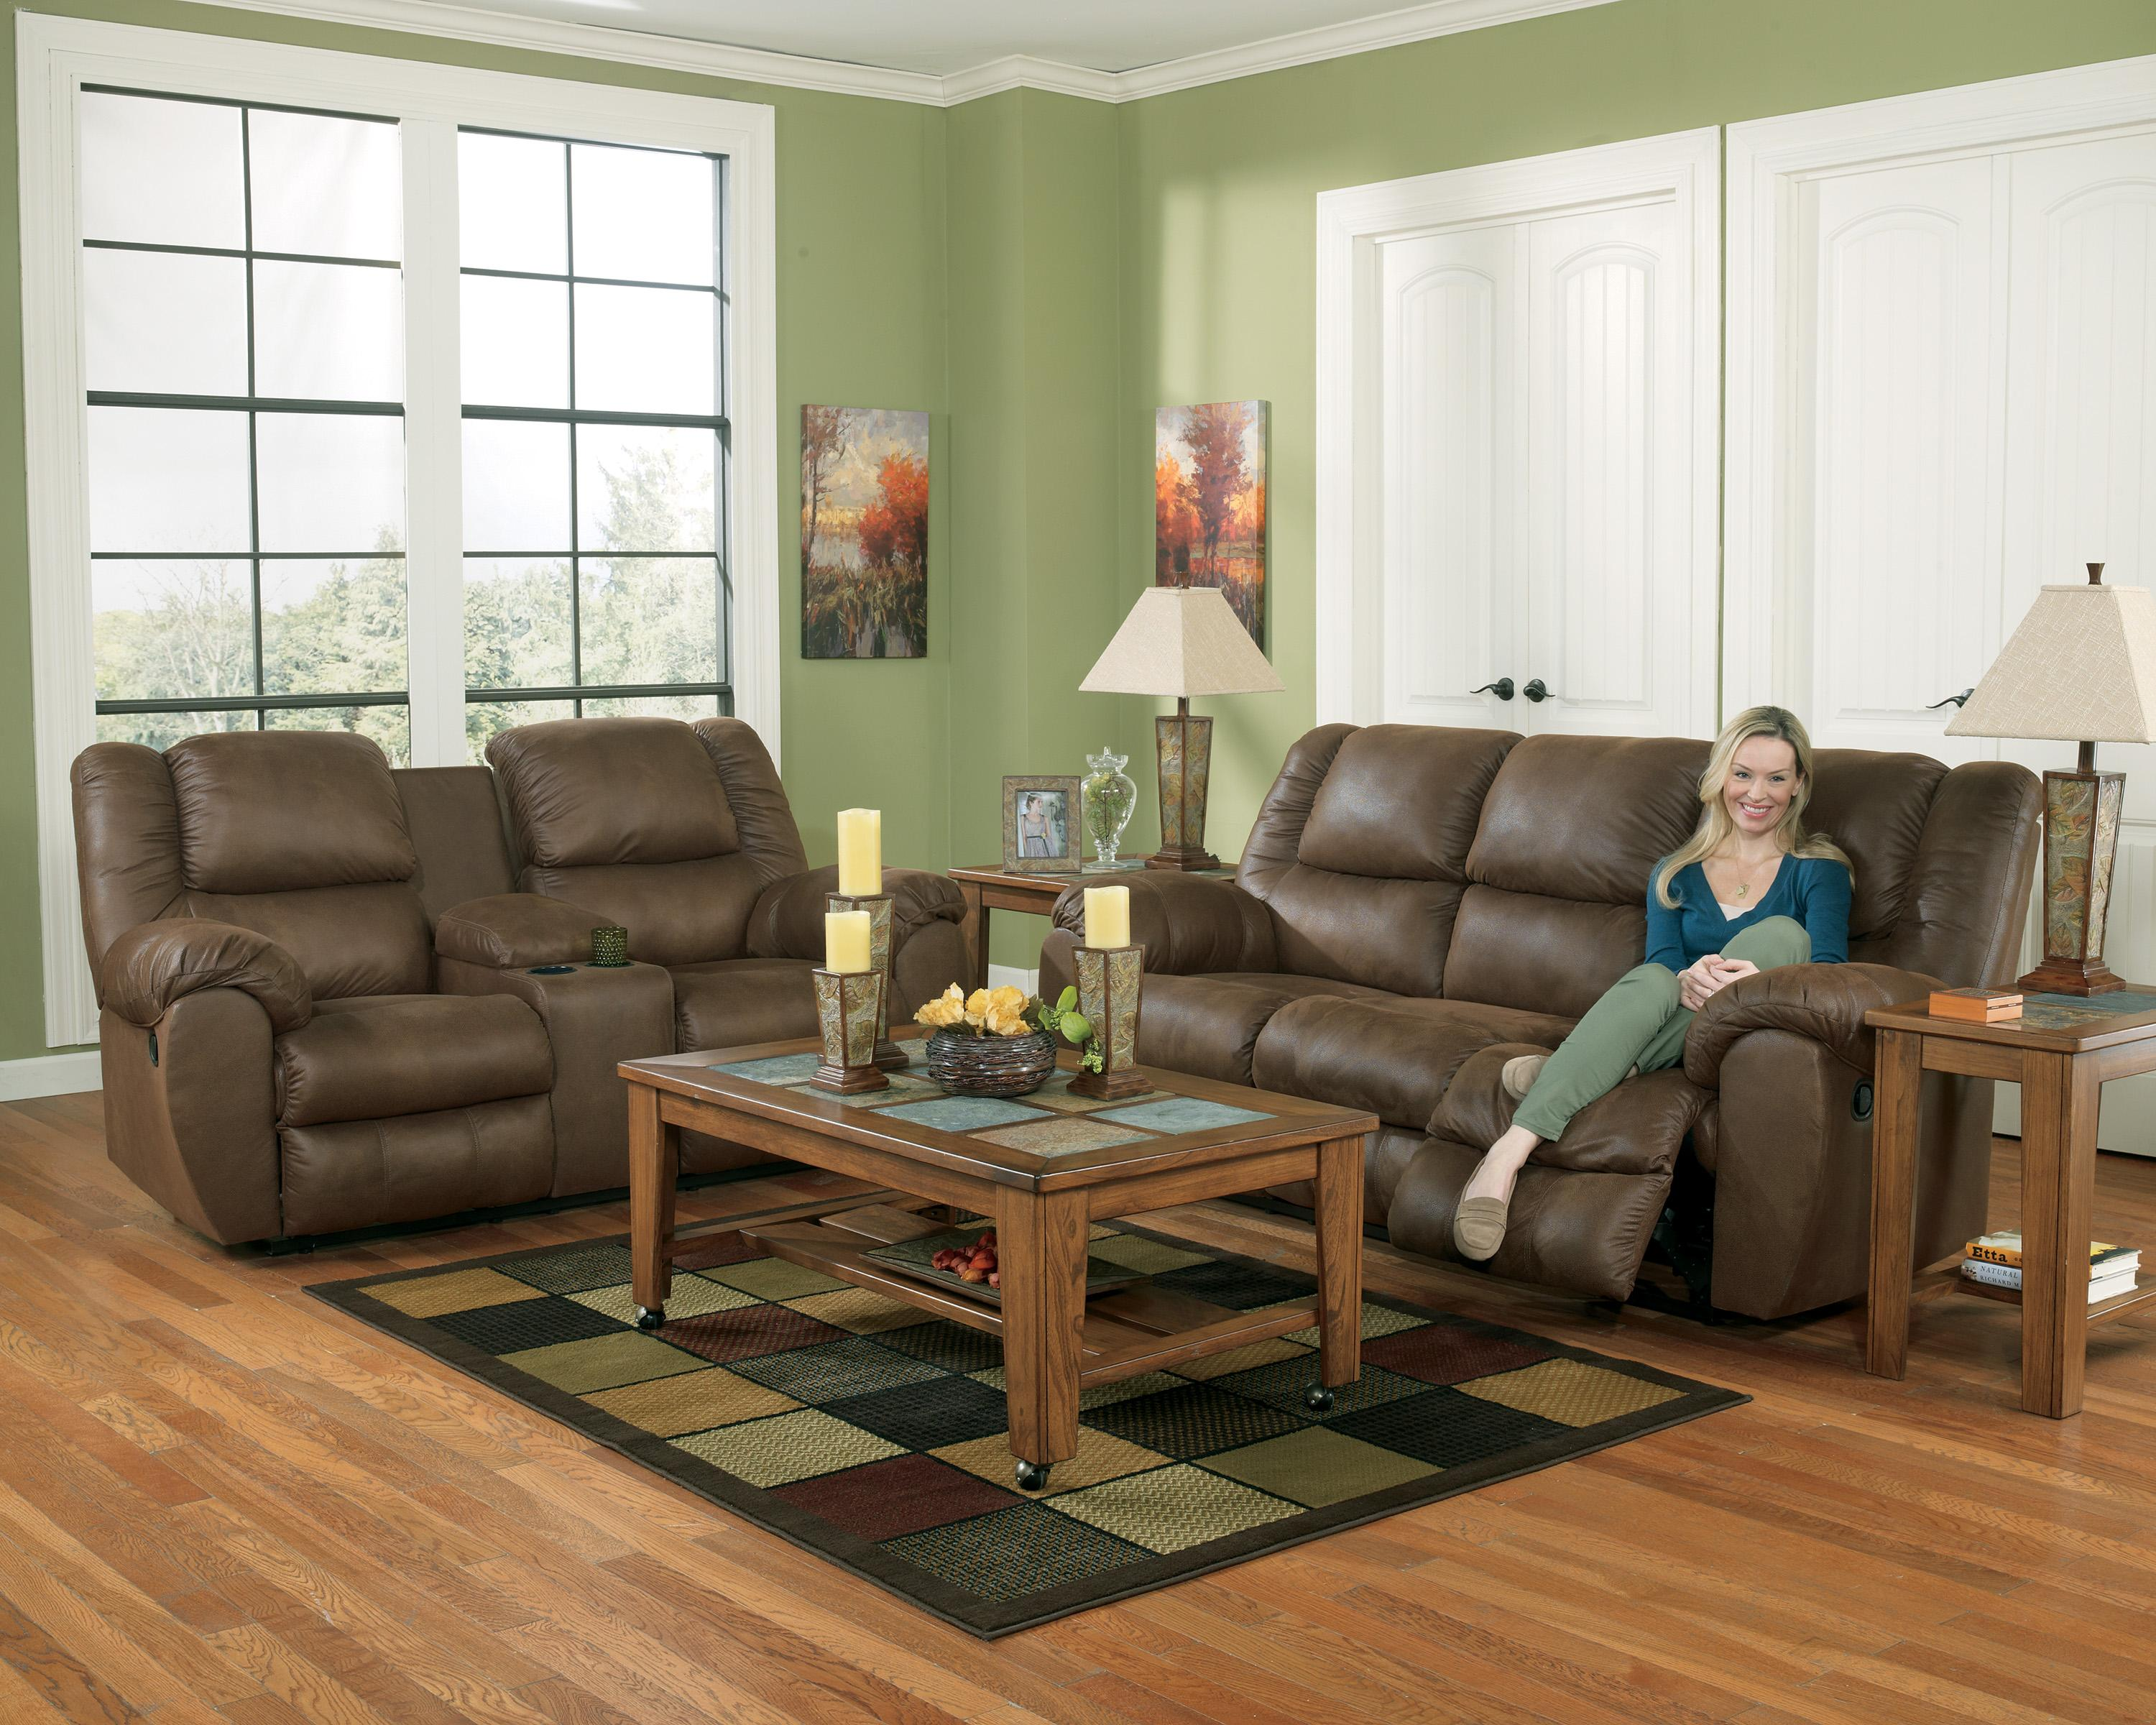 Benchcraft Quarterback Canyon Reclining Sofa in Faux Brown